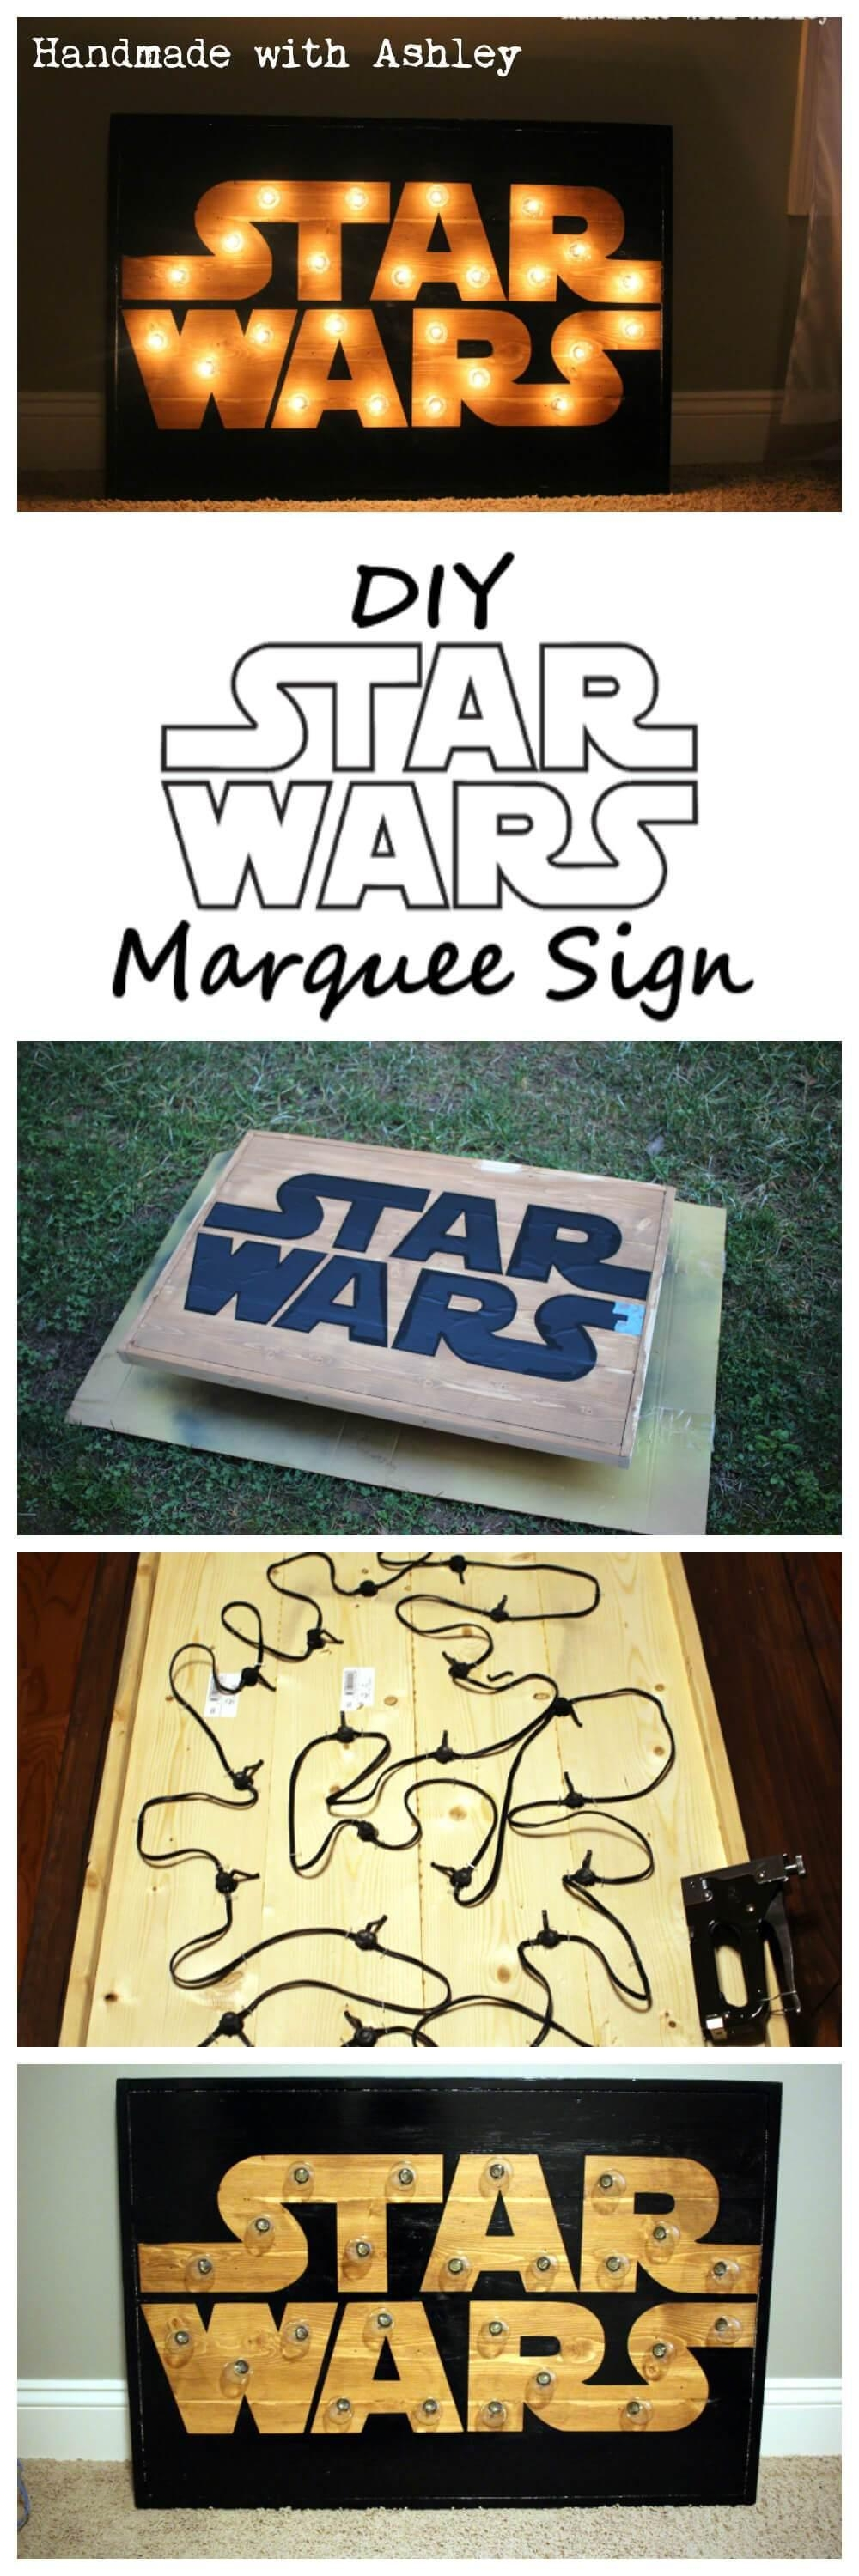 Diy Star Wars Marquee Wall Art Tutorial – Handmade With Ashley Intended For Diy Star Wars Wall Art (View 15 of 20)